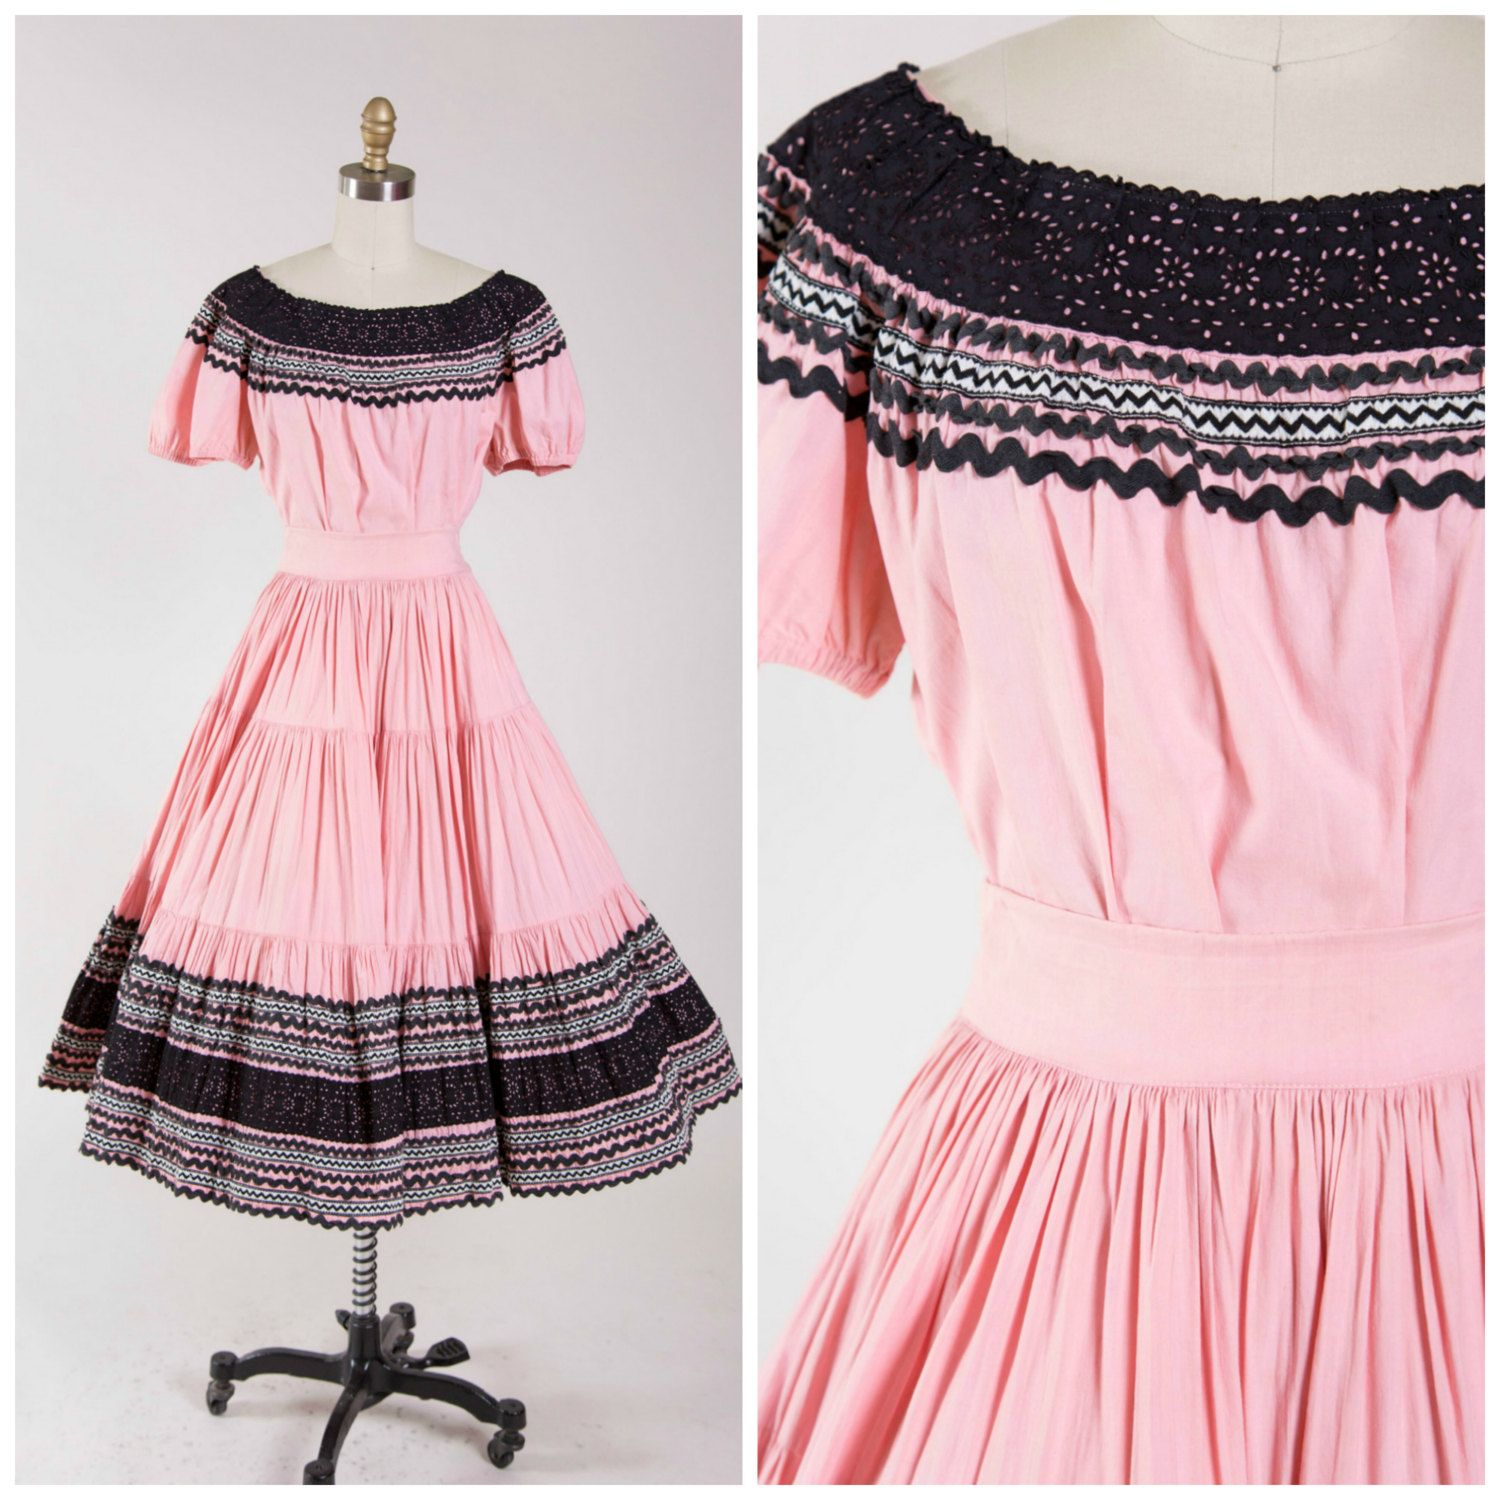 Vintage 50s Fiesta Dress • Rosy Horizon • Pink Black Cotton 1950s ...